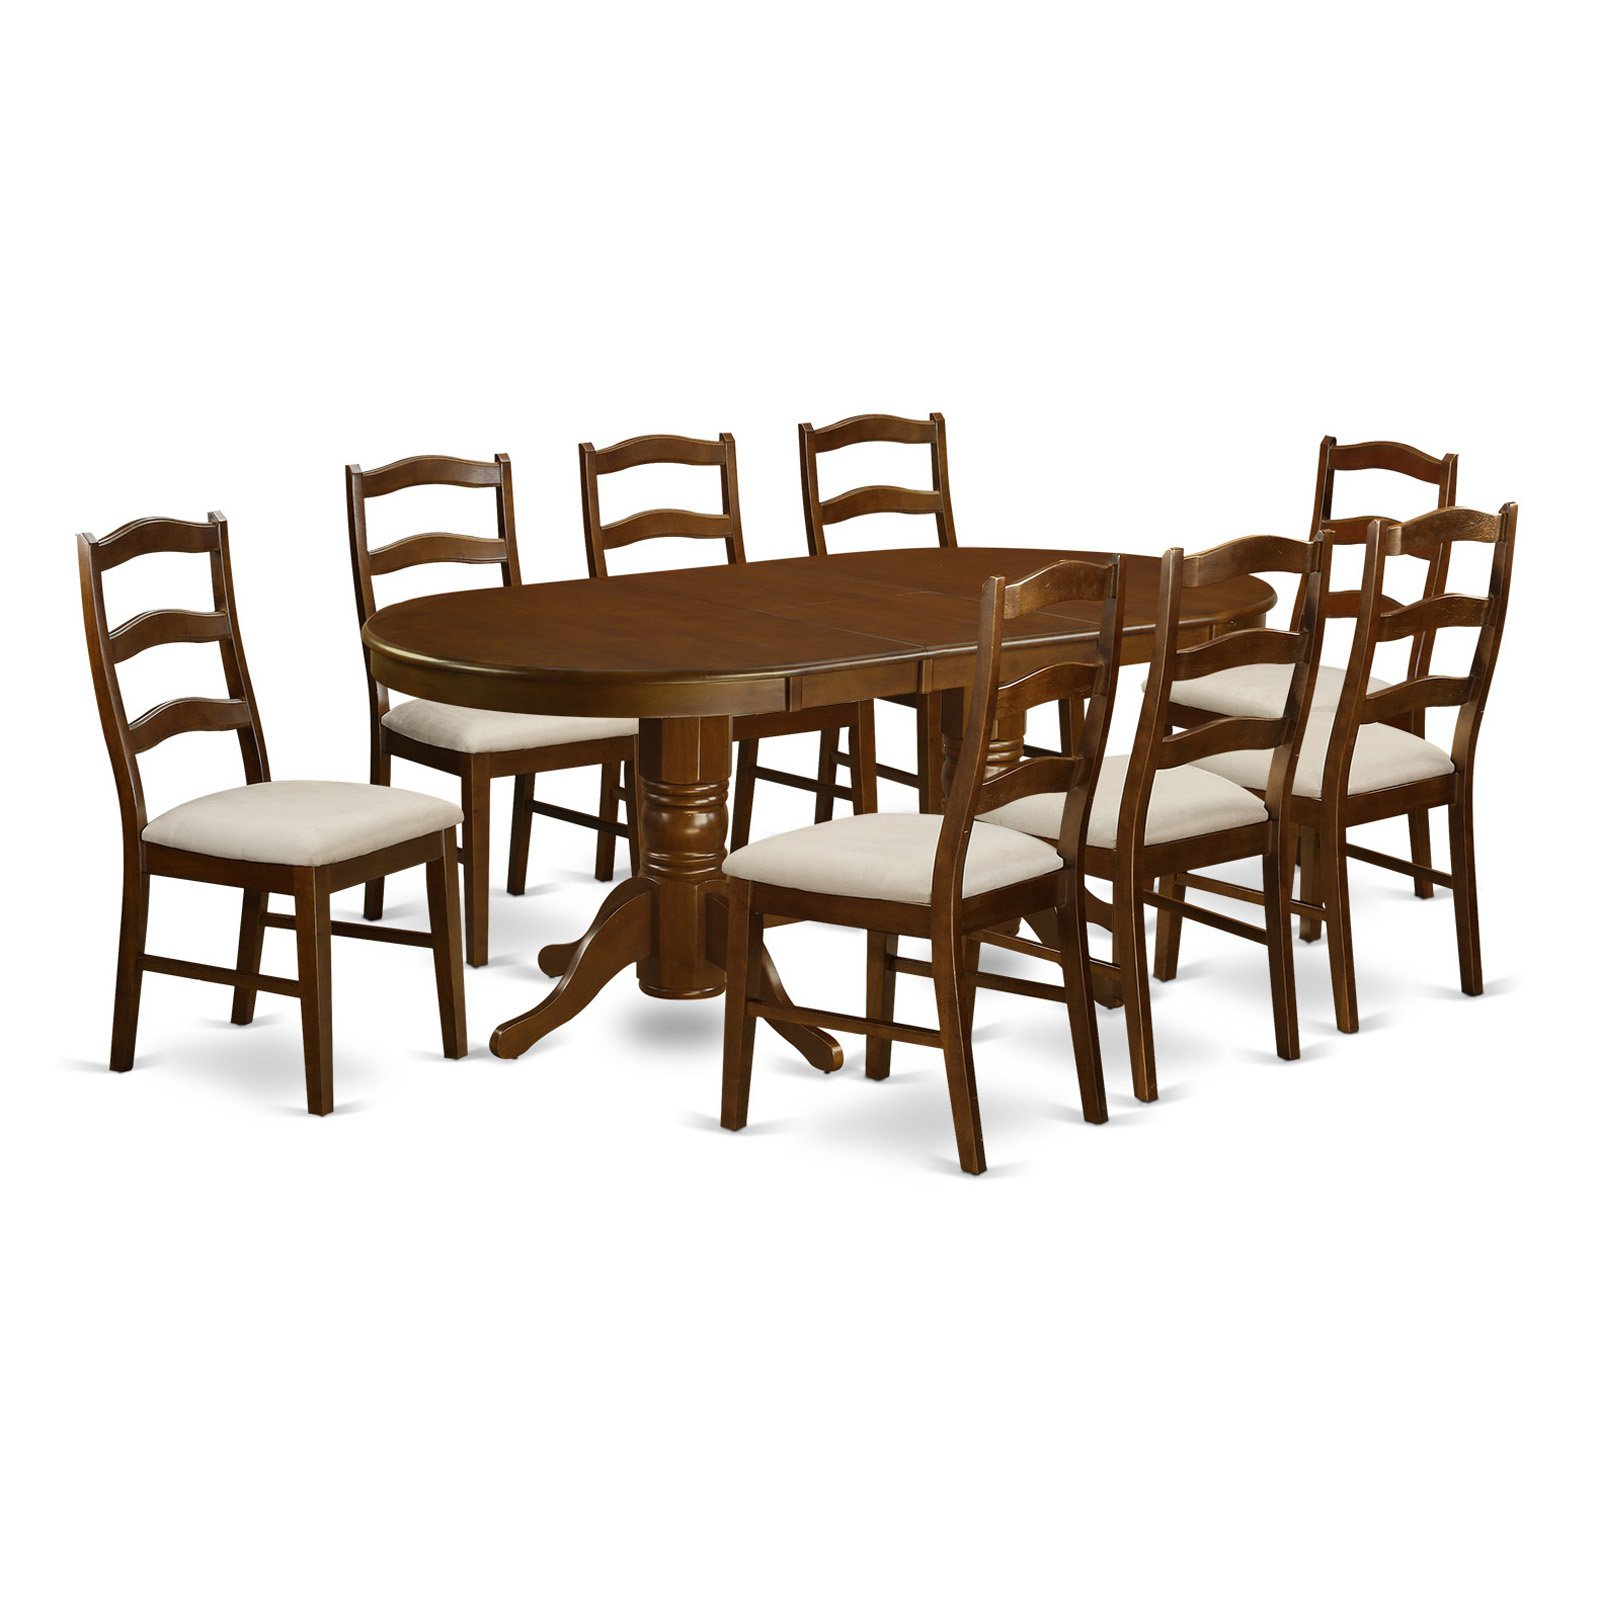 East West Furniture Vancouver 9 Piece Ladderback Dining Table Set